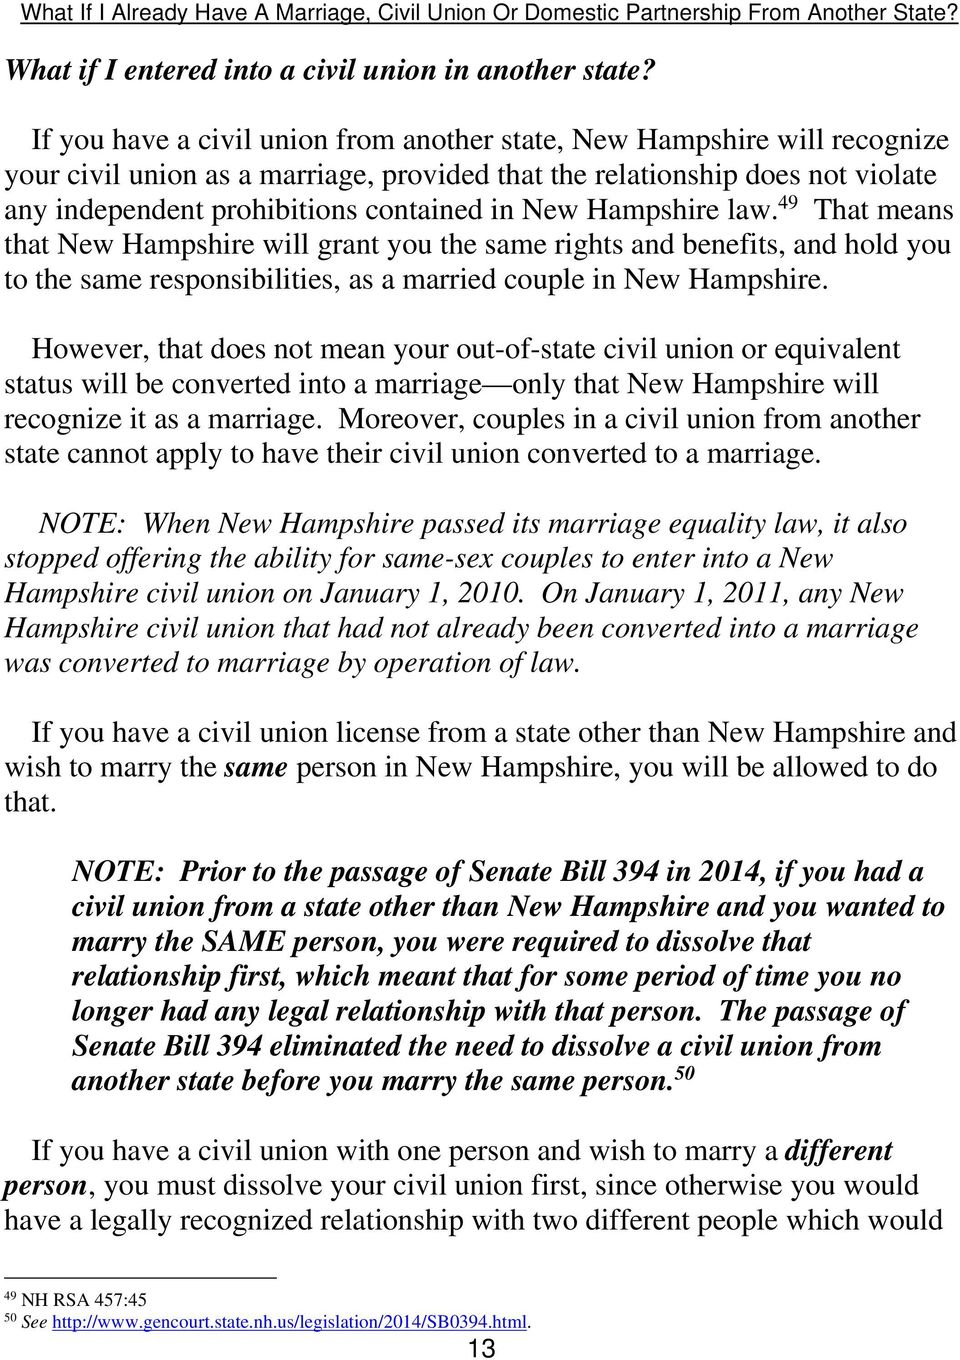 New Hampshire law. 49 That means that New Hampshire will grant you the same rights and benefits, and hold you to the same responsibilities, as a married couple in New Hampshire.